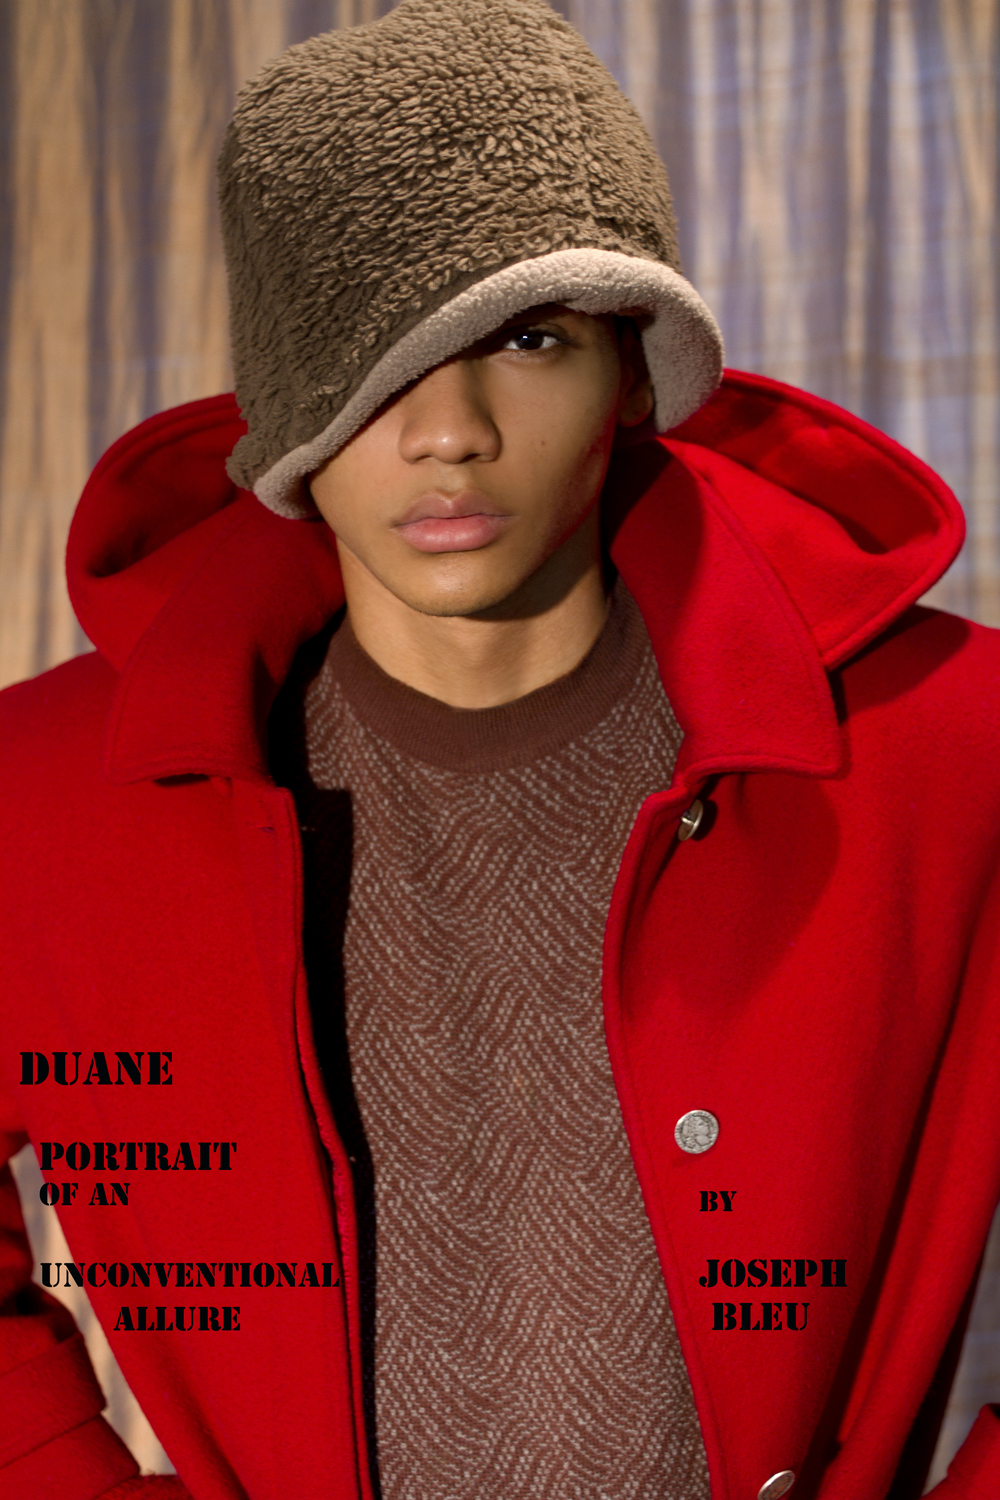 Take a look of the recent work by fashion photographer Joseph Bleu with male model Duane Moreno of Soul Artist Management in Duane Portrait of an Unconventional Allure styling by Monkey, hair by Juan @ Extravagant, Skin www.matthewmillerskin.com and graphics by Ducky.